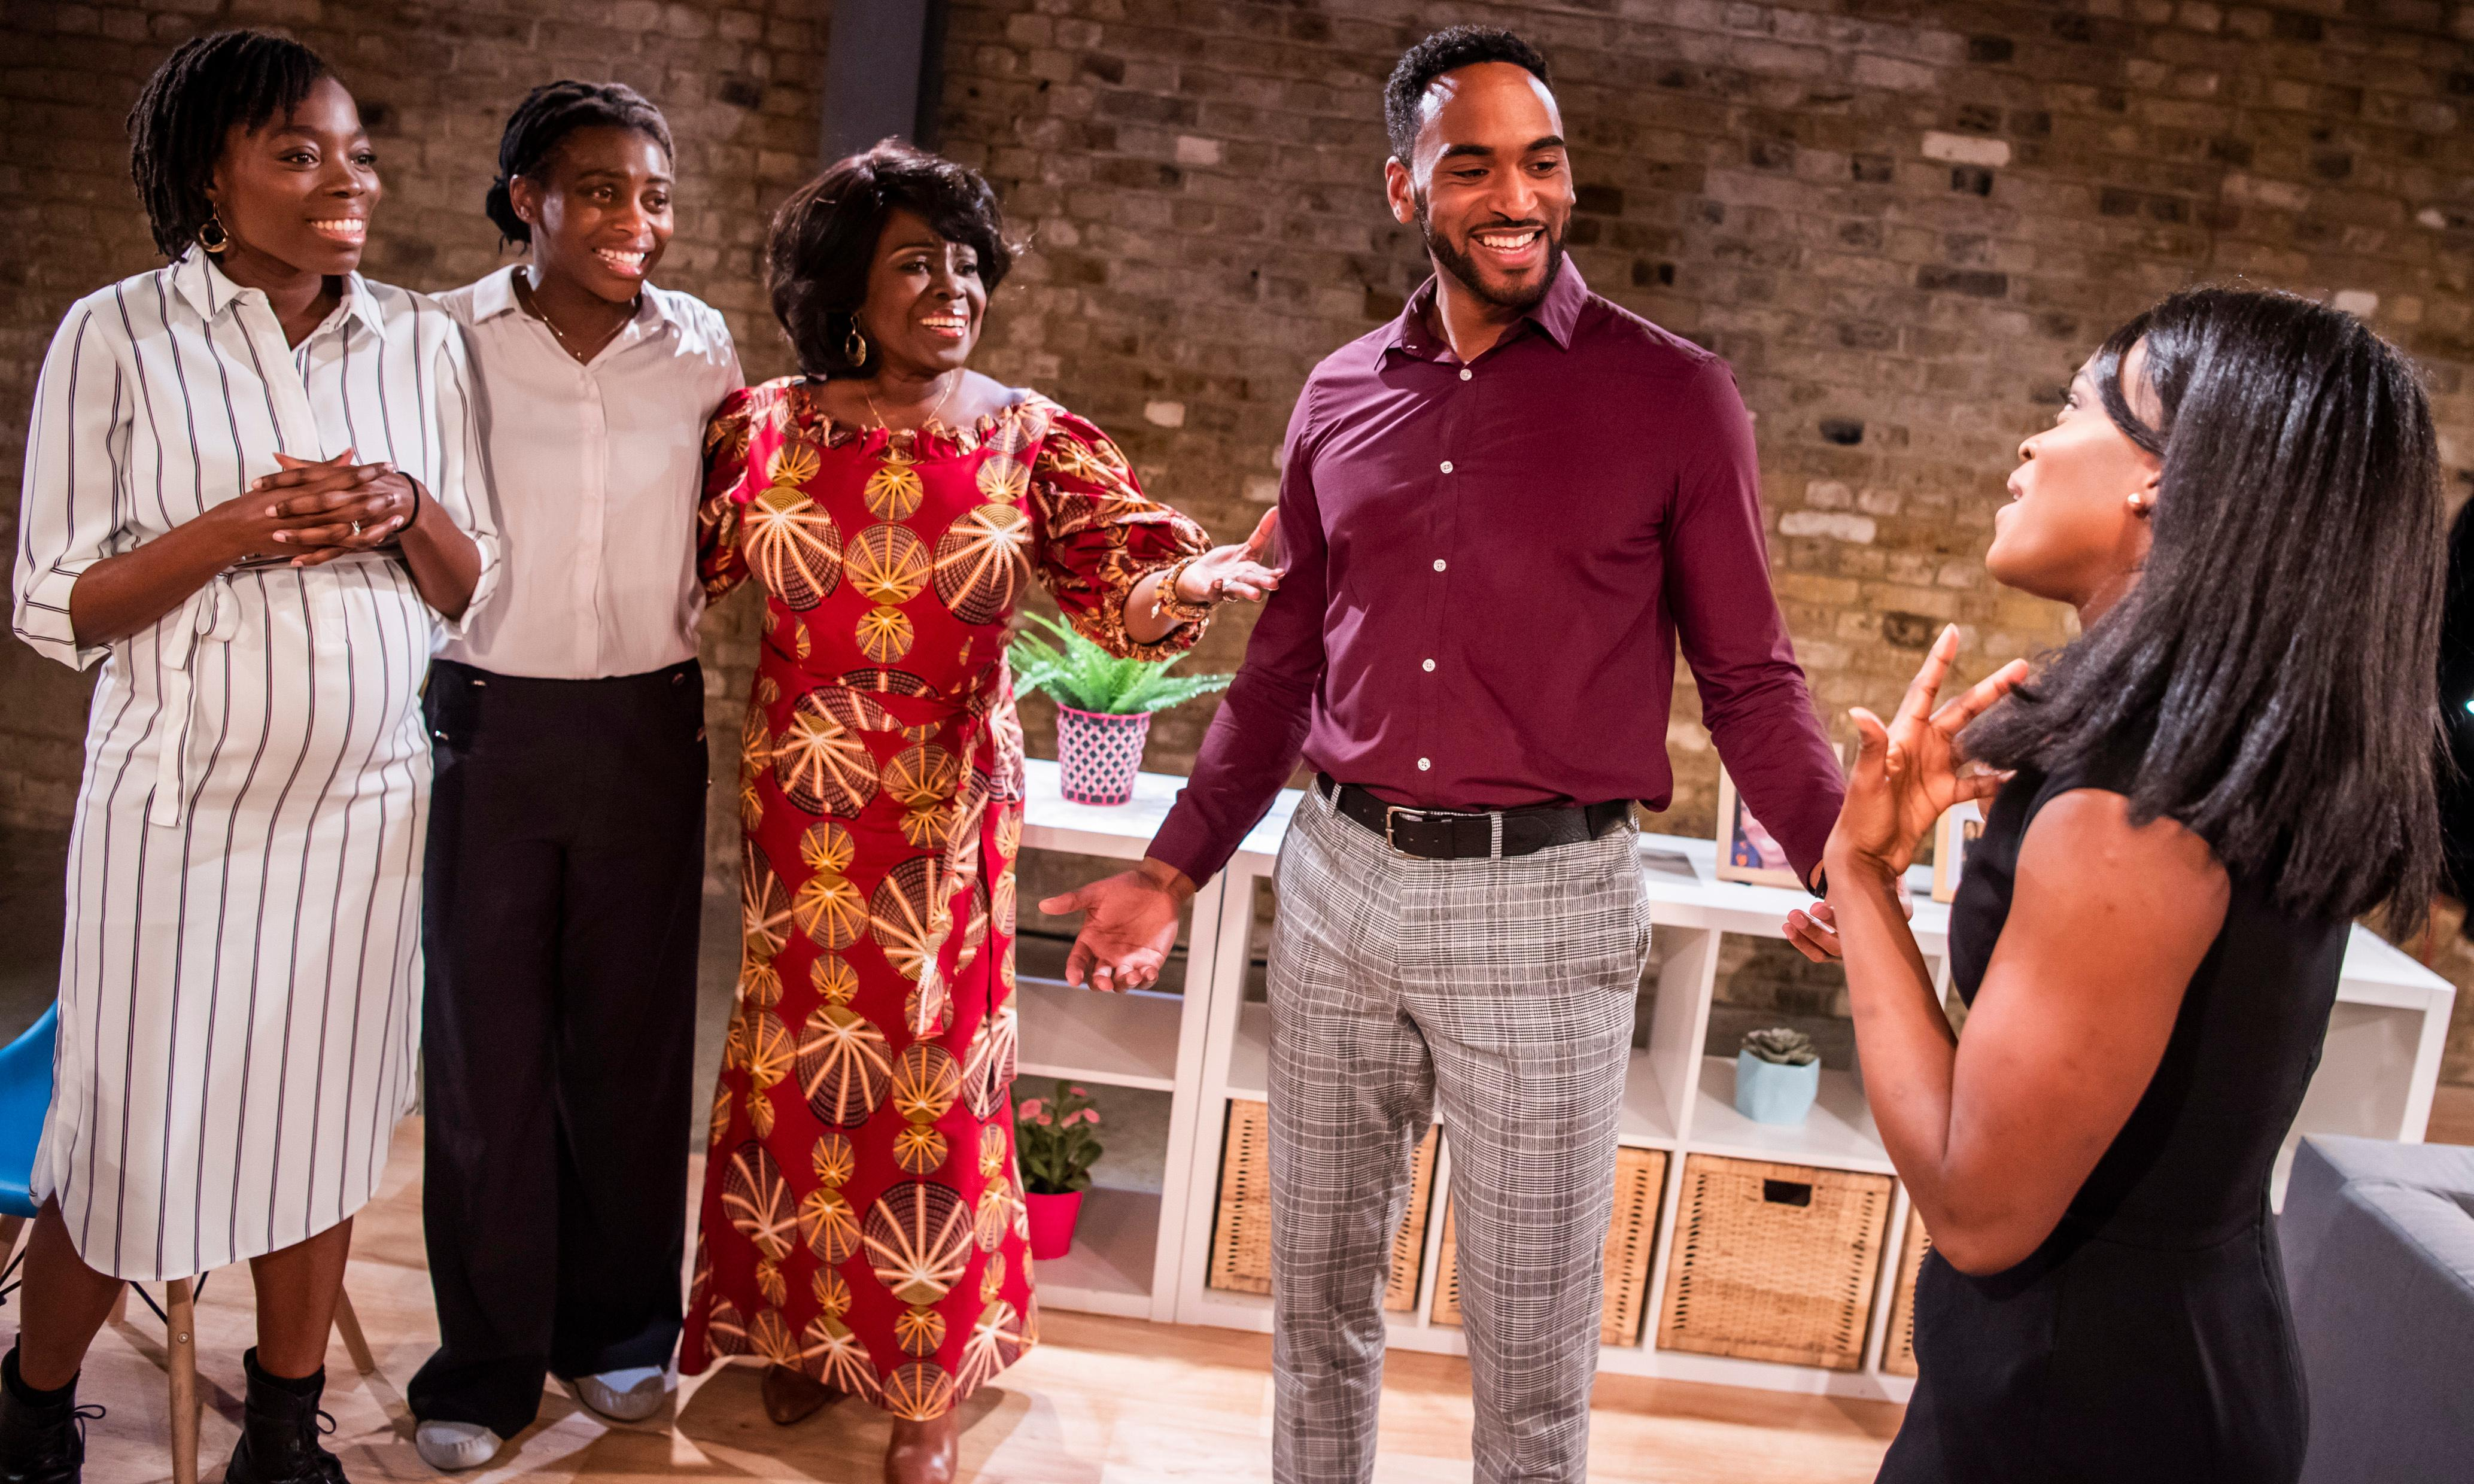 Hoard review – emotional wreckage from a drive-by family visit